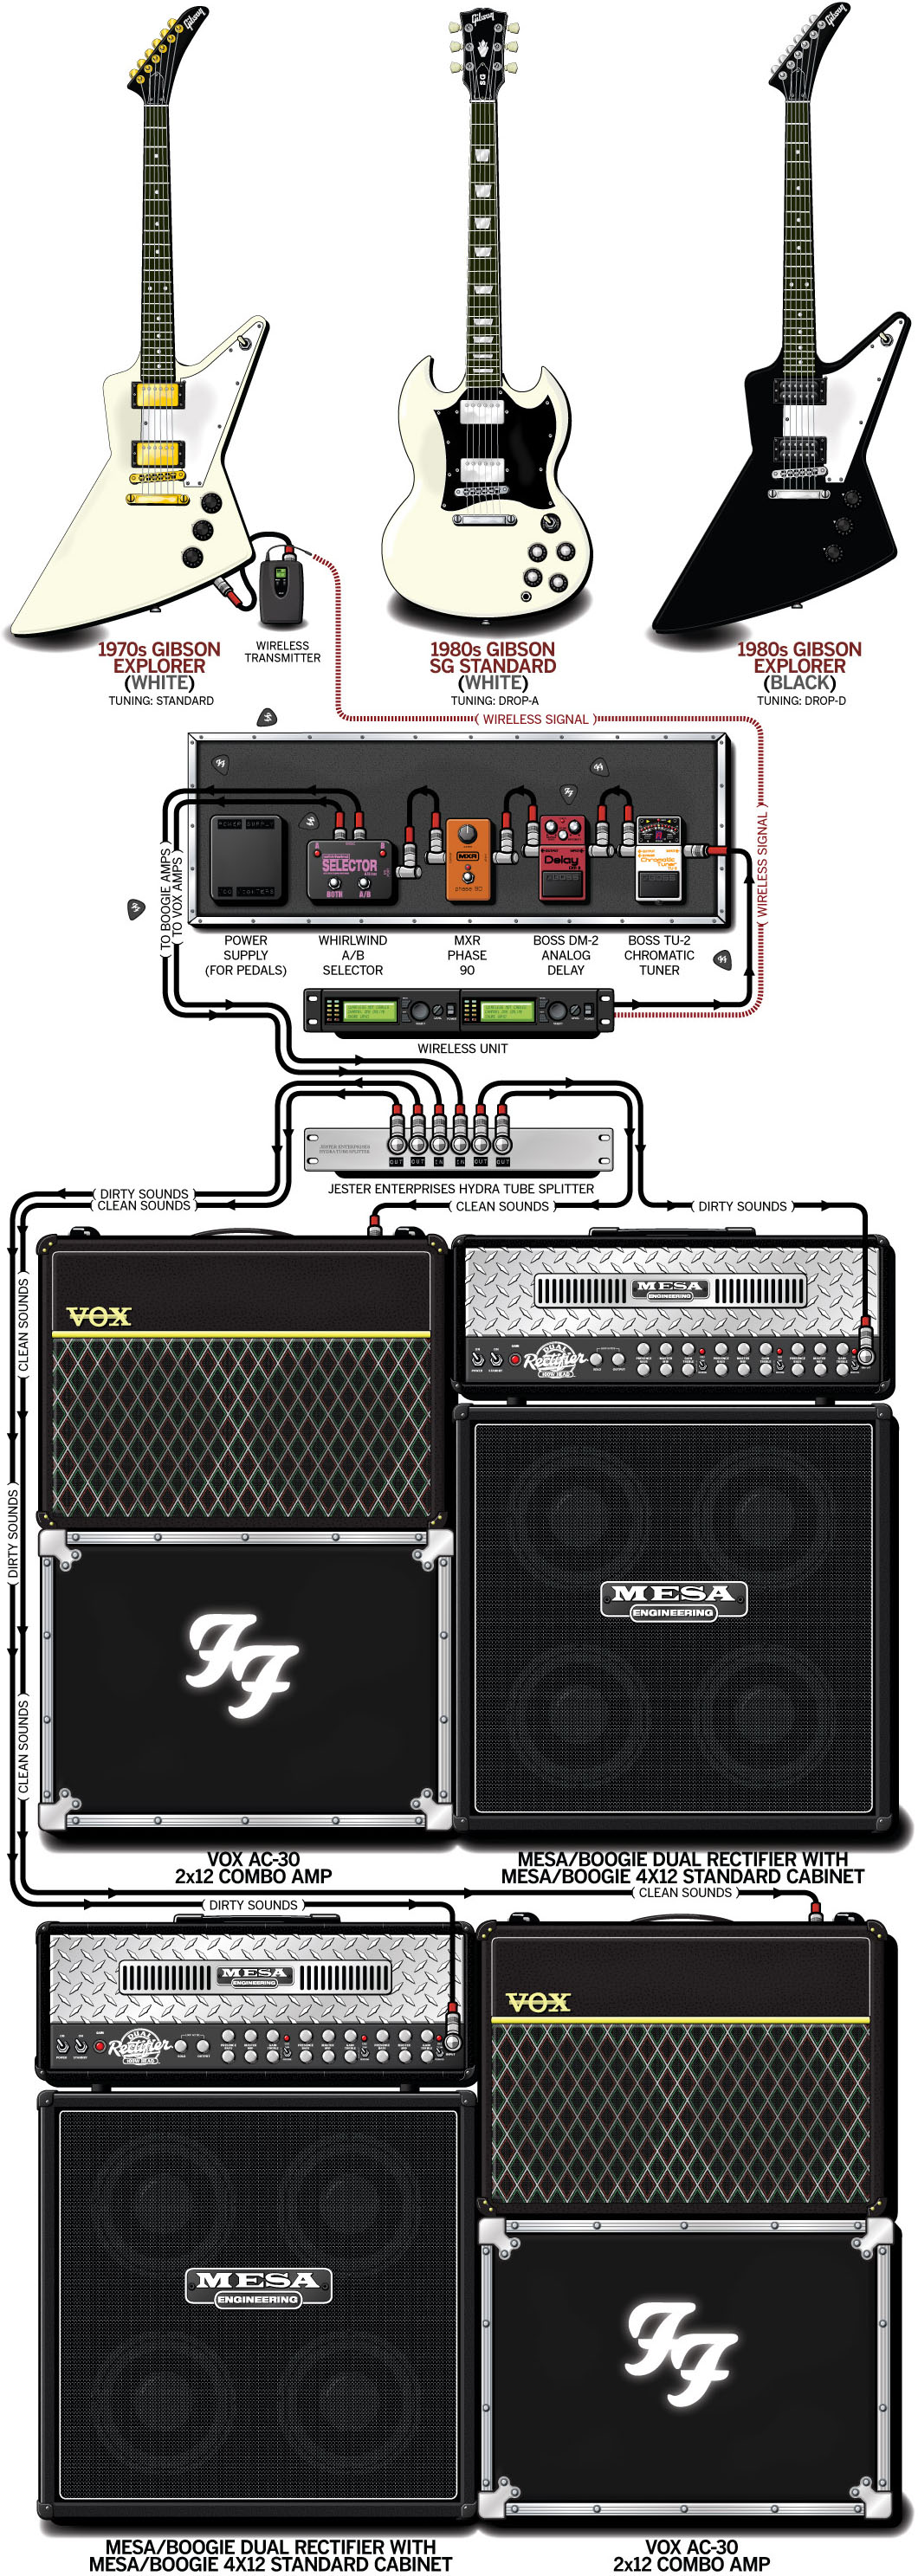 Dave Grohl Guitar Gear & Rig – Foo Fighters – 2000